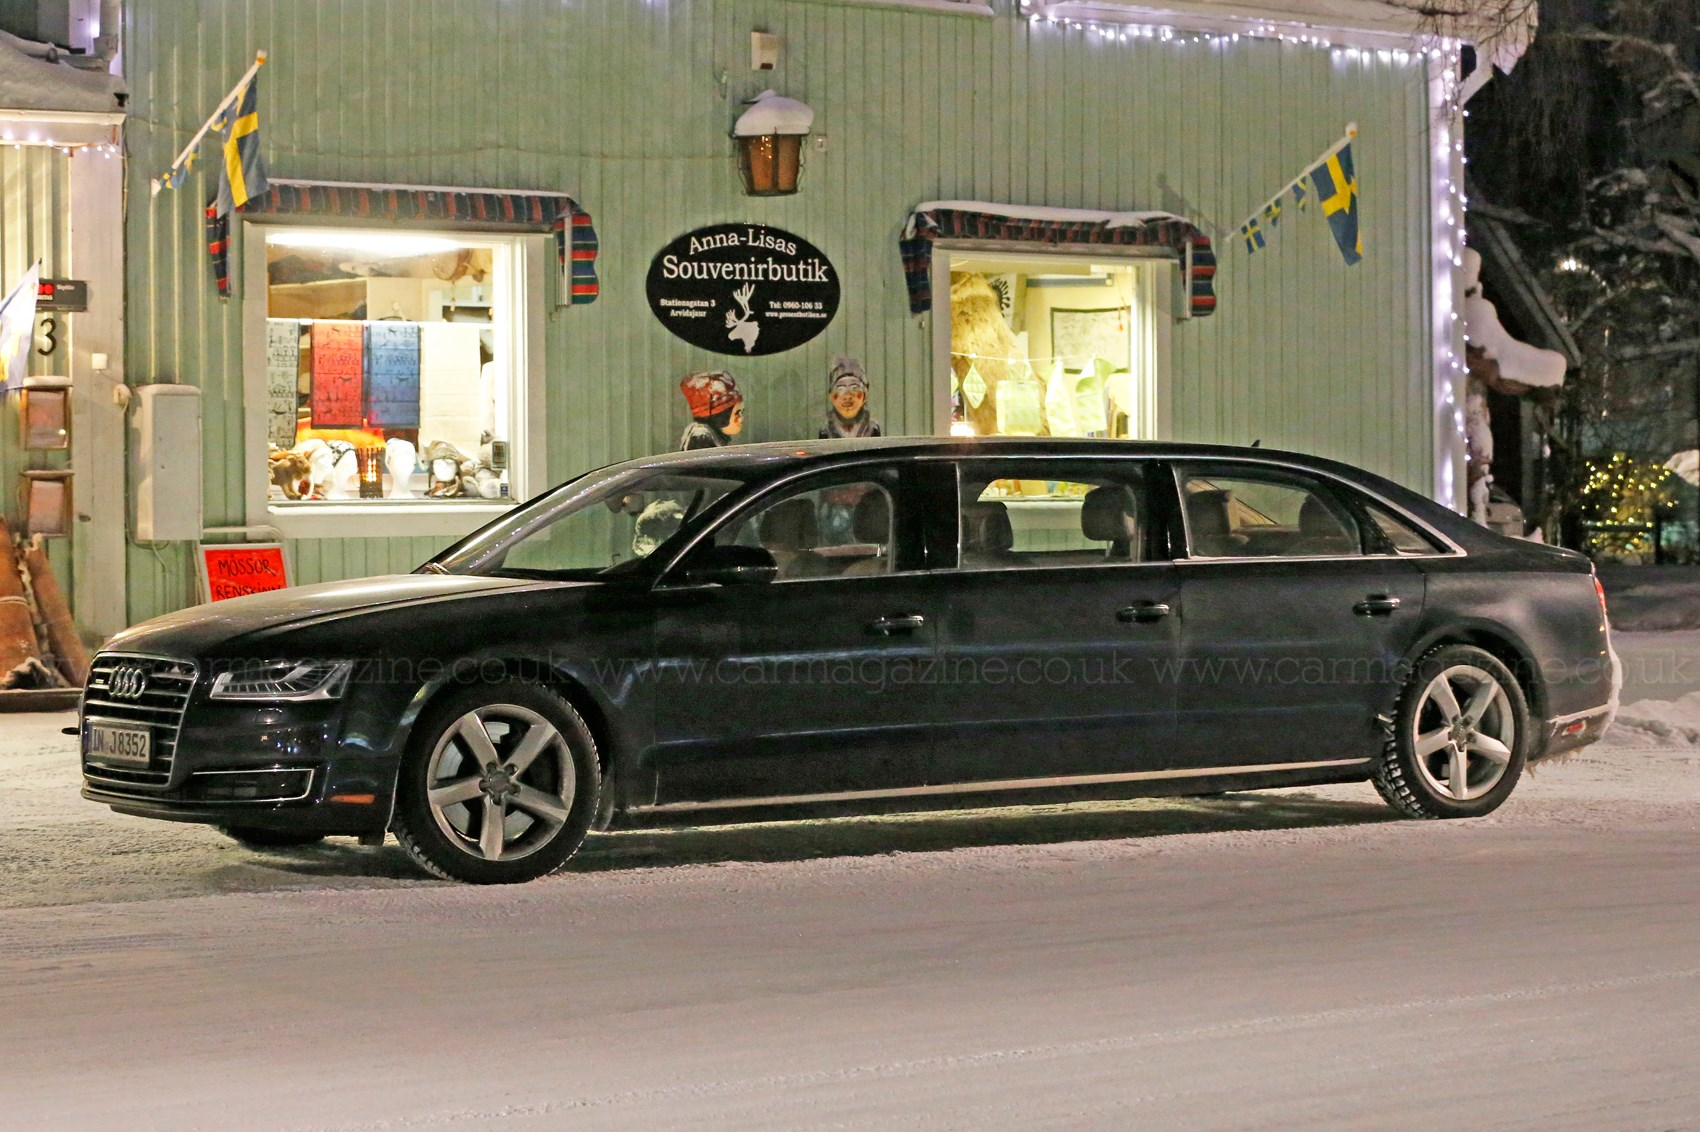 Is it us or do the door panels not look entirely straight? & And stretchu2026 Mystery six-door Audi A8 limo spotted in Sweden | CAR ...